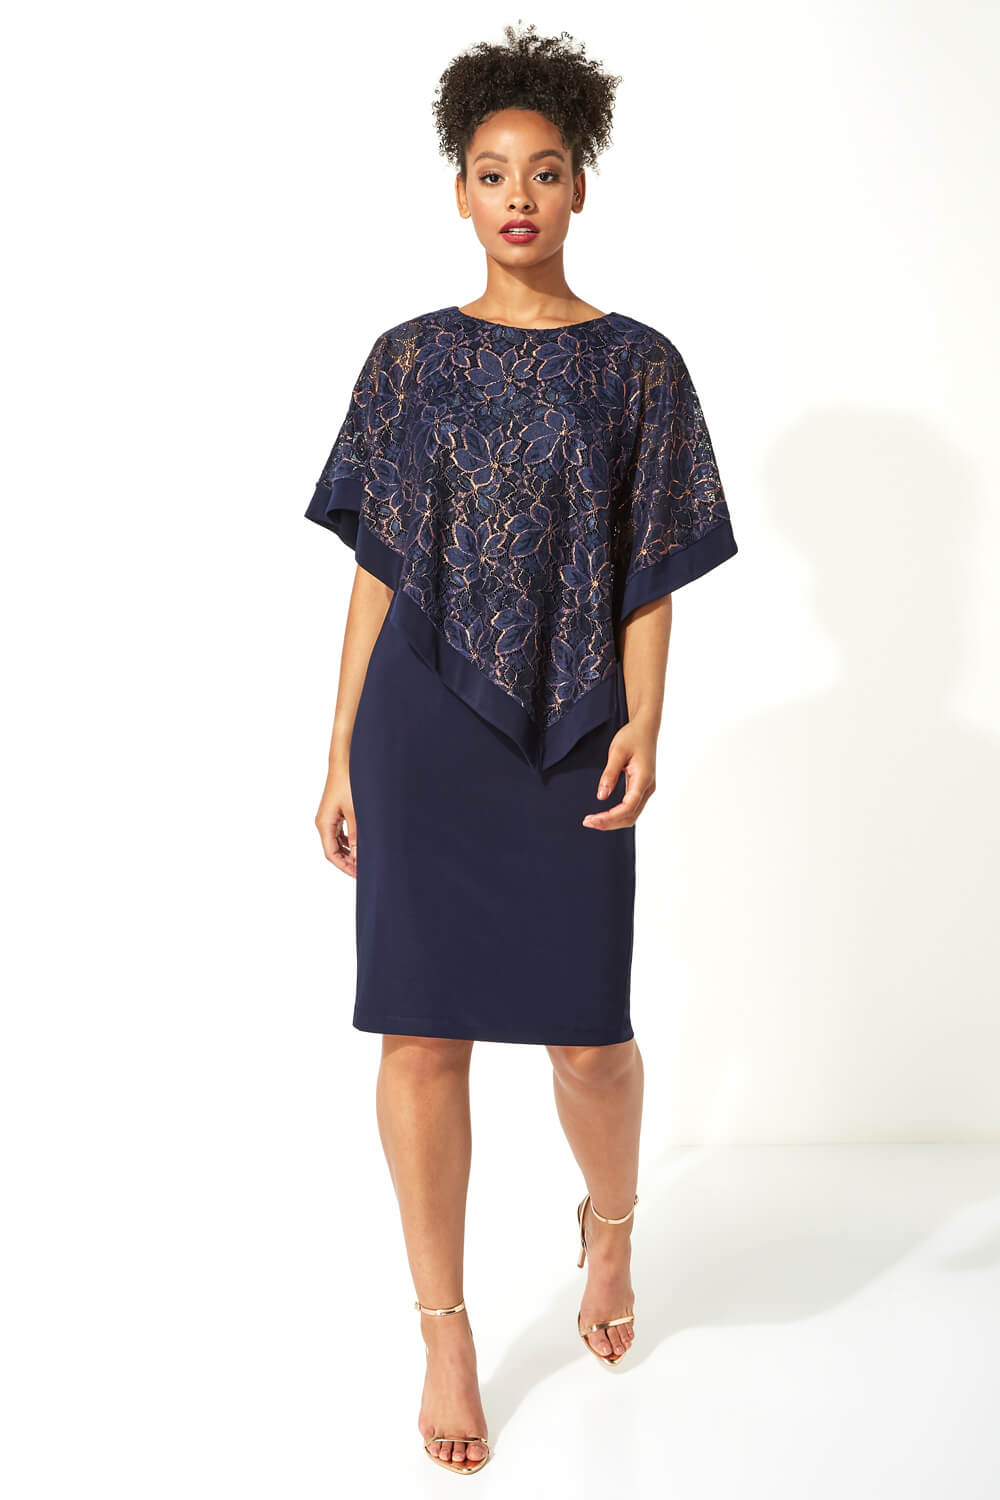 Roman-Originals-Women-039-s-Sequin-Lace-Boat-Neck-Overlay-Knee-Length-Dress thumbnail 25